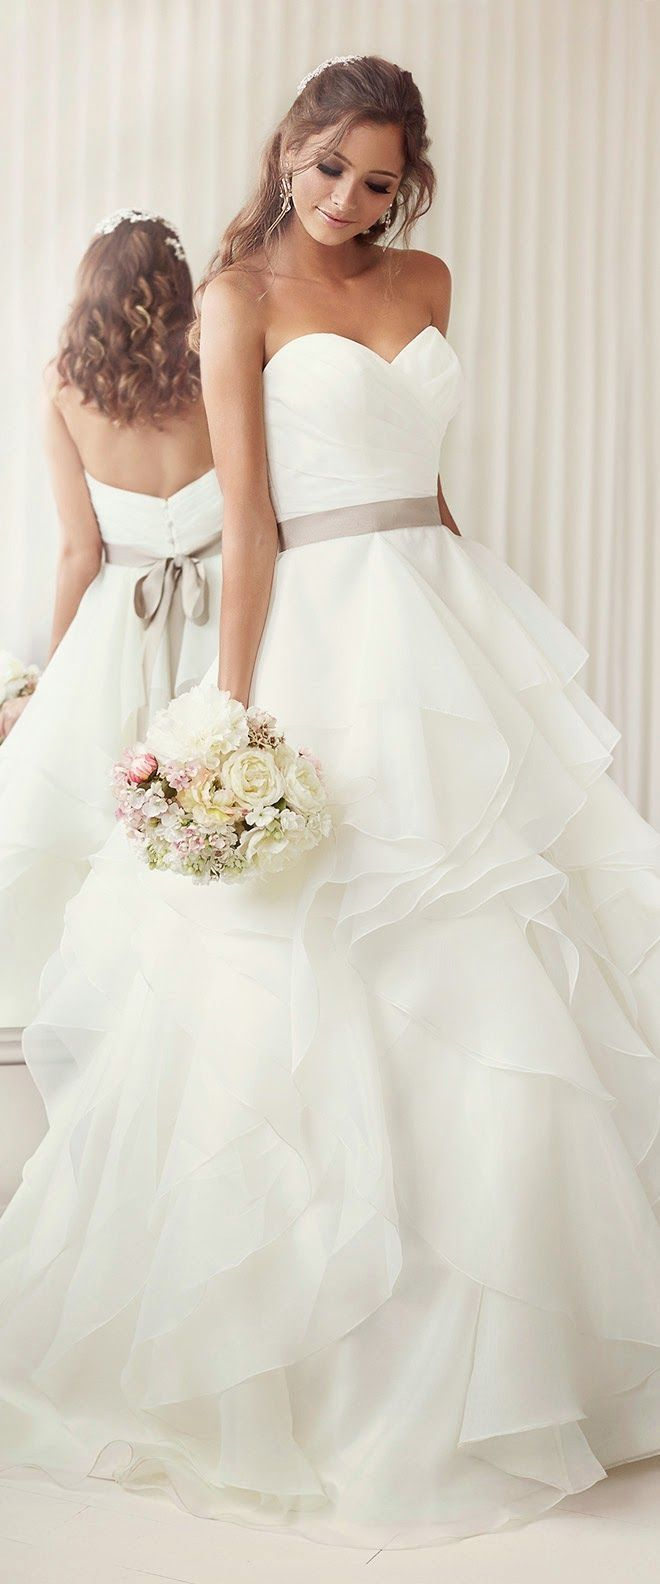 ba0f1dd7d191aa1f6ddaf6d0e3d4a387--cute-wedding-dress--wedding-dresses